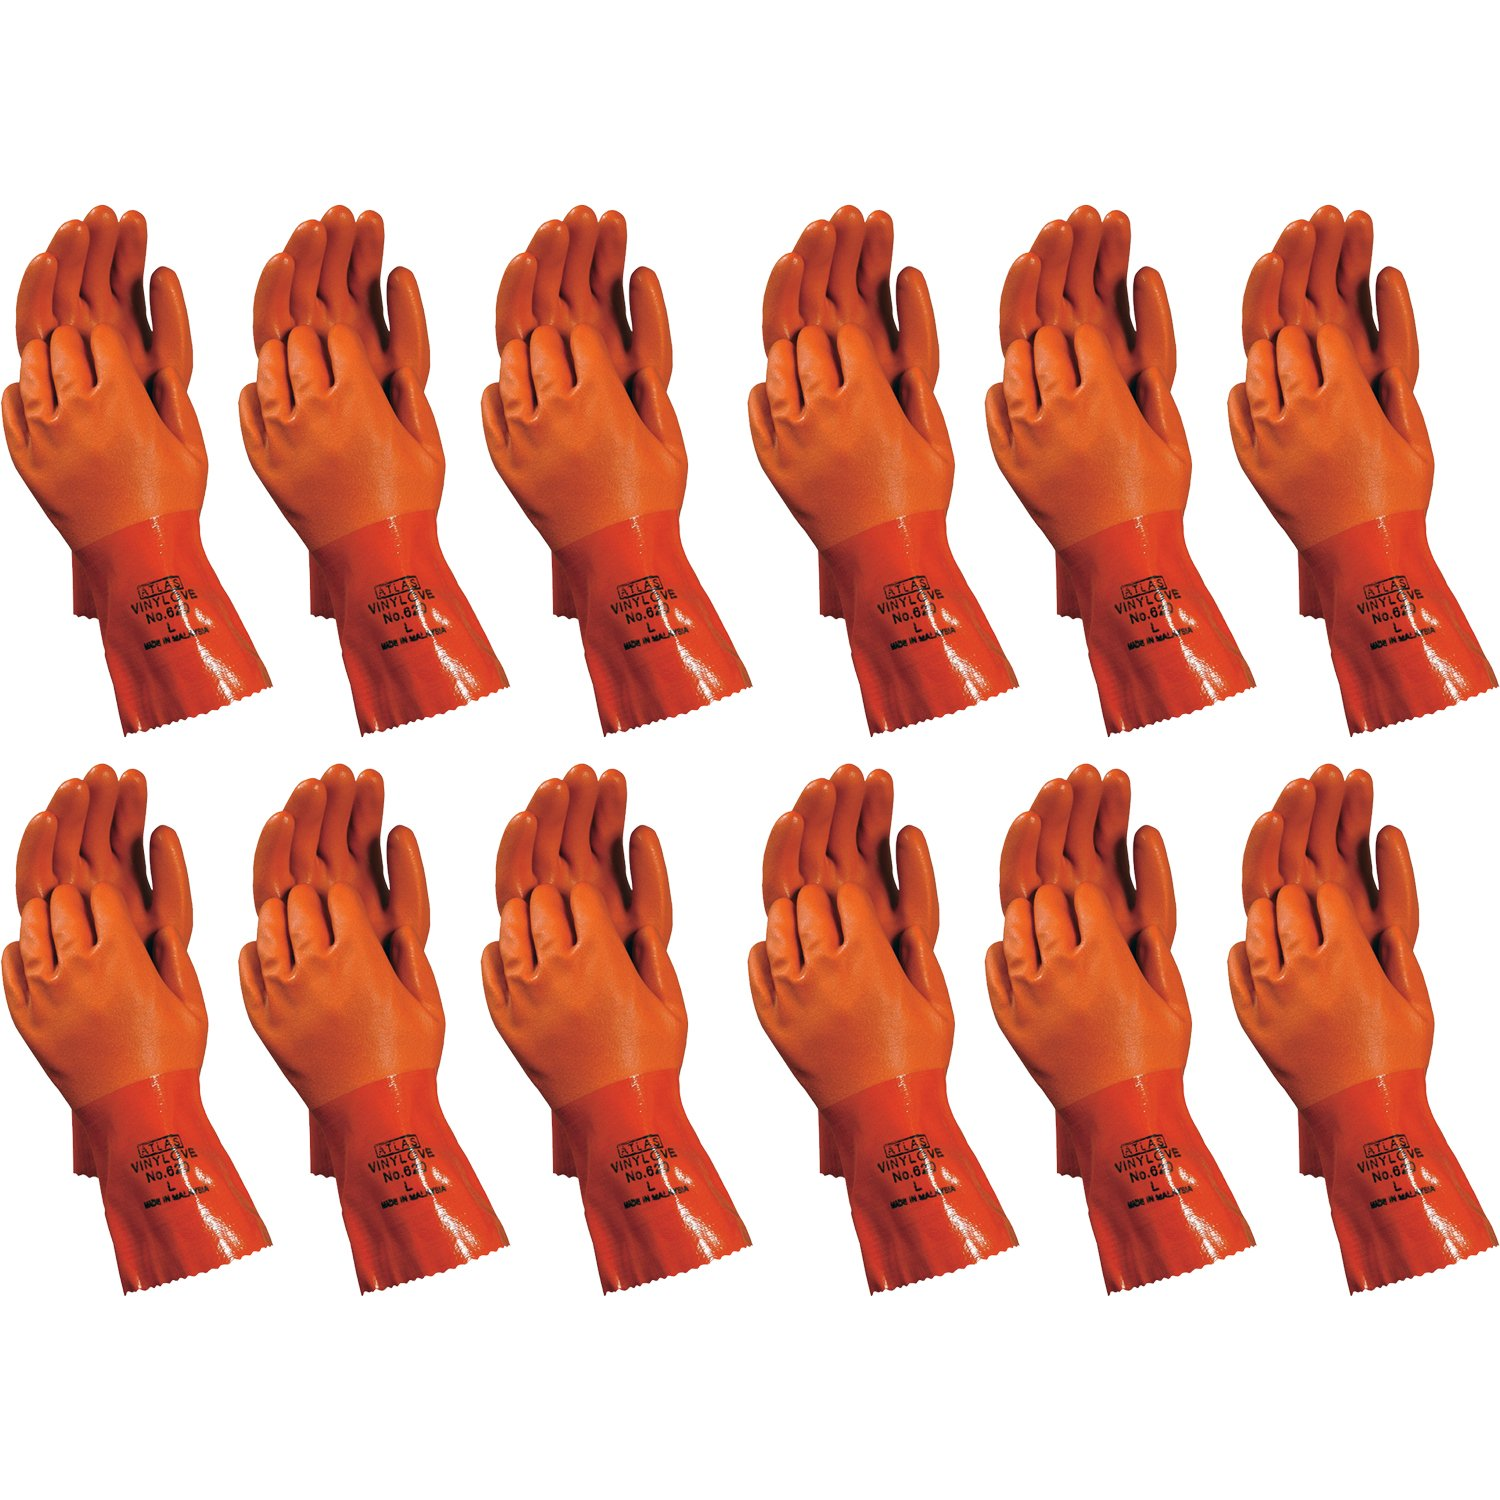 Atlas 620 Vinylove Double-Dipped X-Large PVC Chemical Resistant Gloves, 12-Pairs by ATLAS (Image #1)